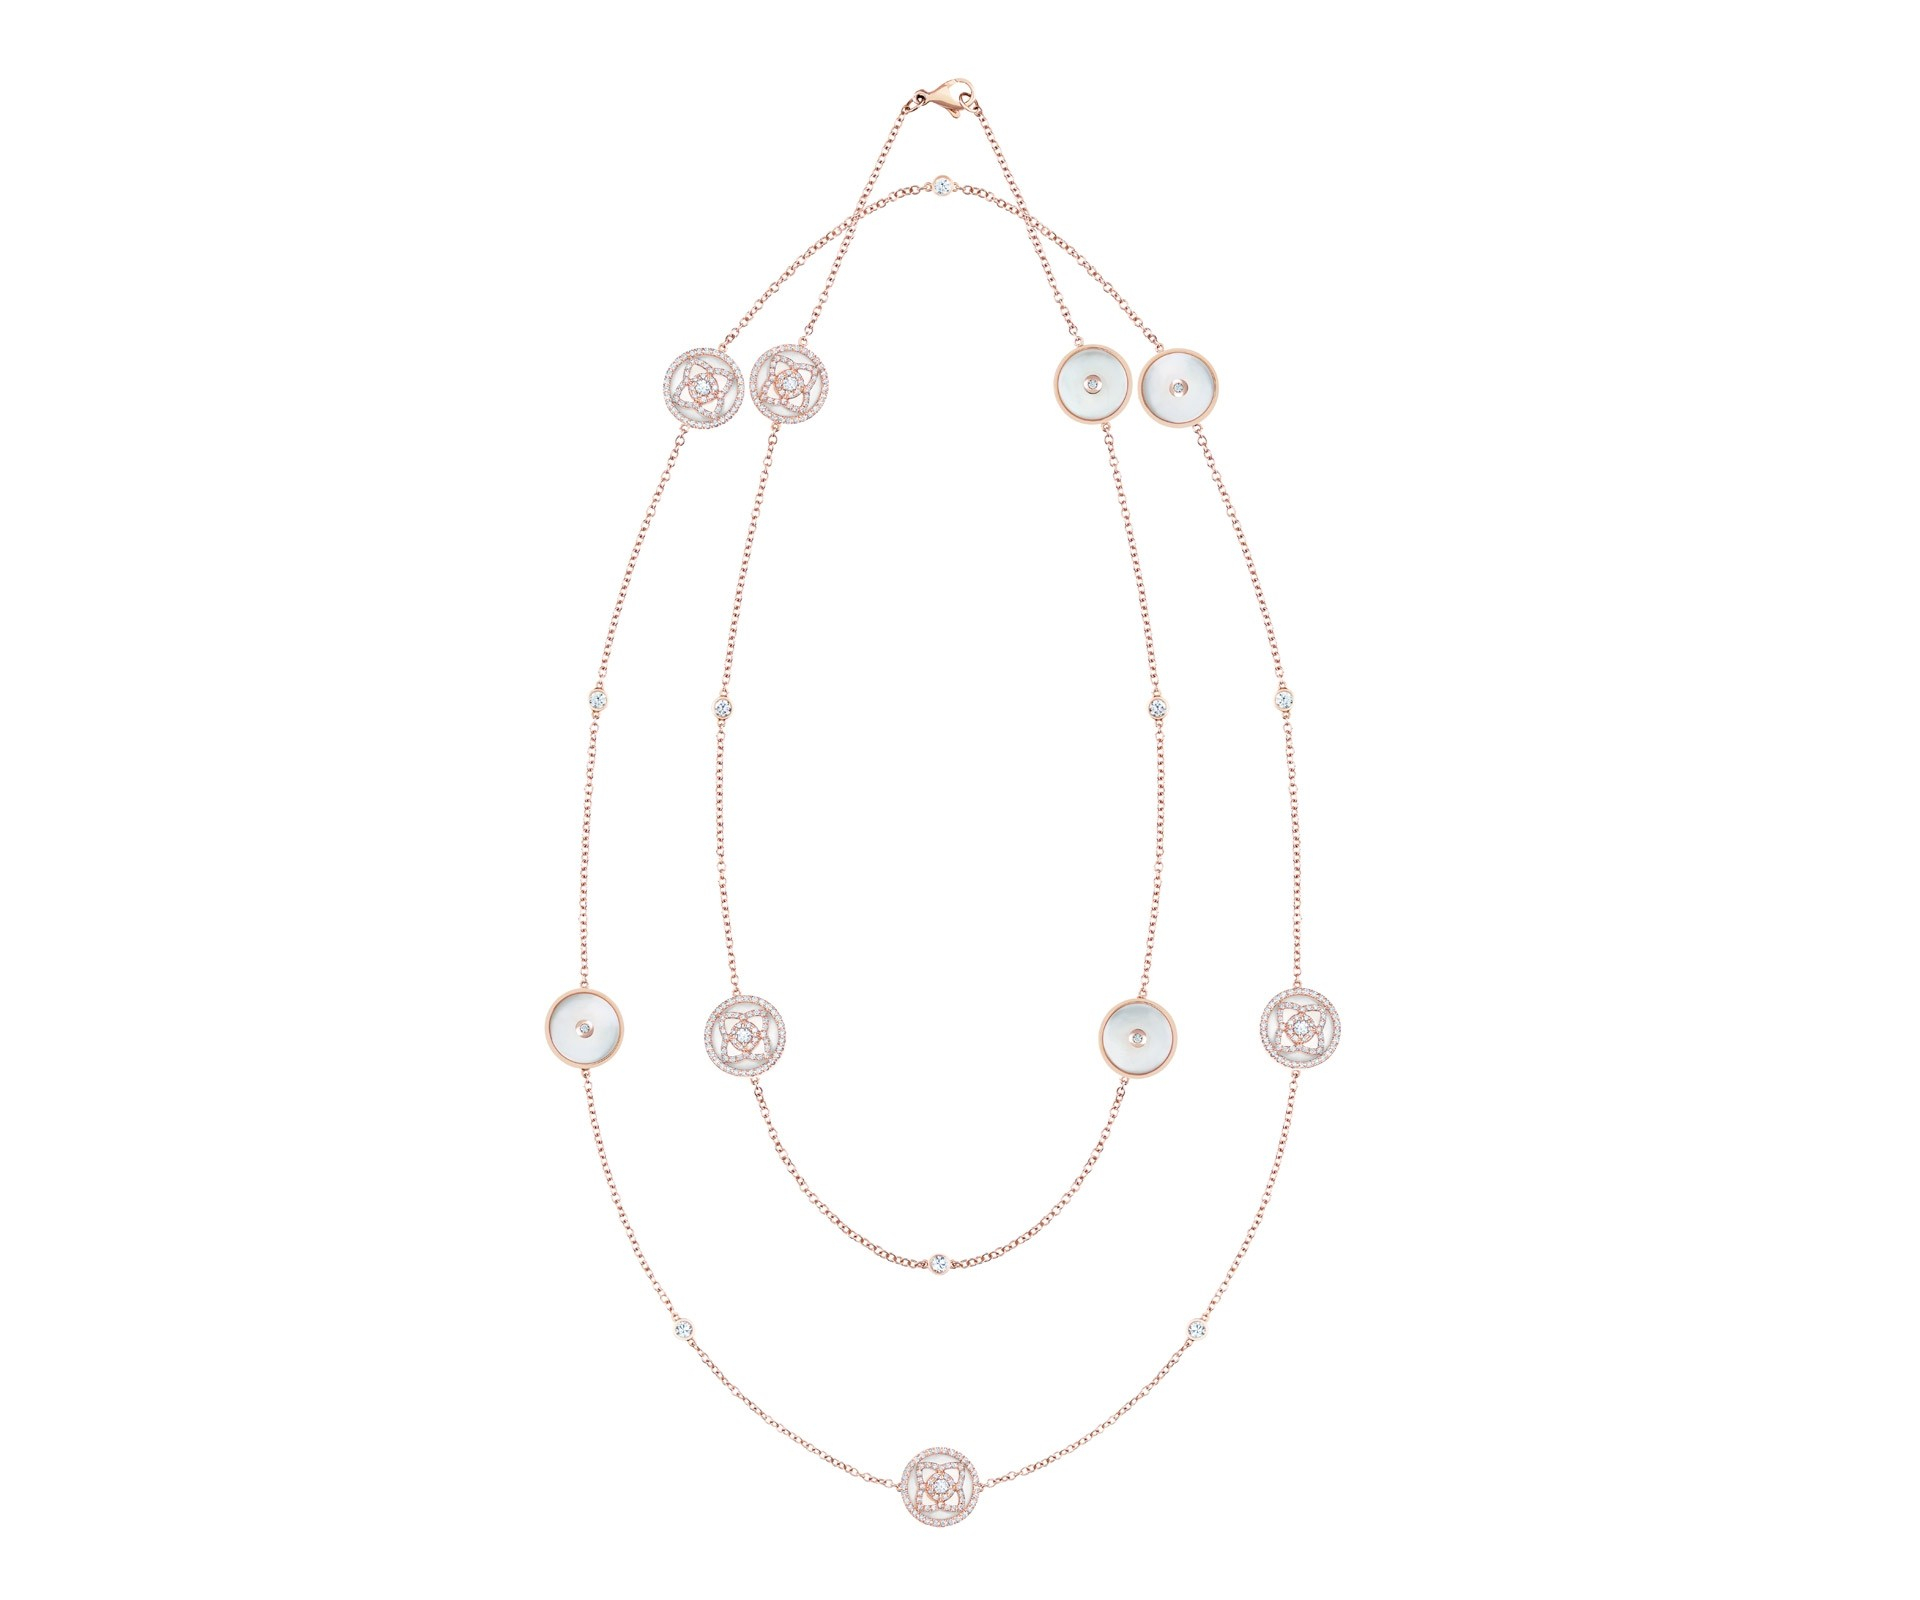 Enchanted Lotus Rose Gold & White Mother Of Pearl Sautoir Necklace In Most Up To Date Diamond Sautoir Necklaces In Yellow Gold (Gallery 10 of 25)